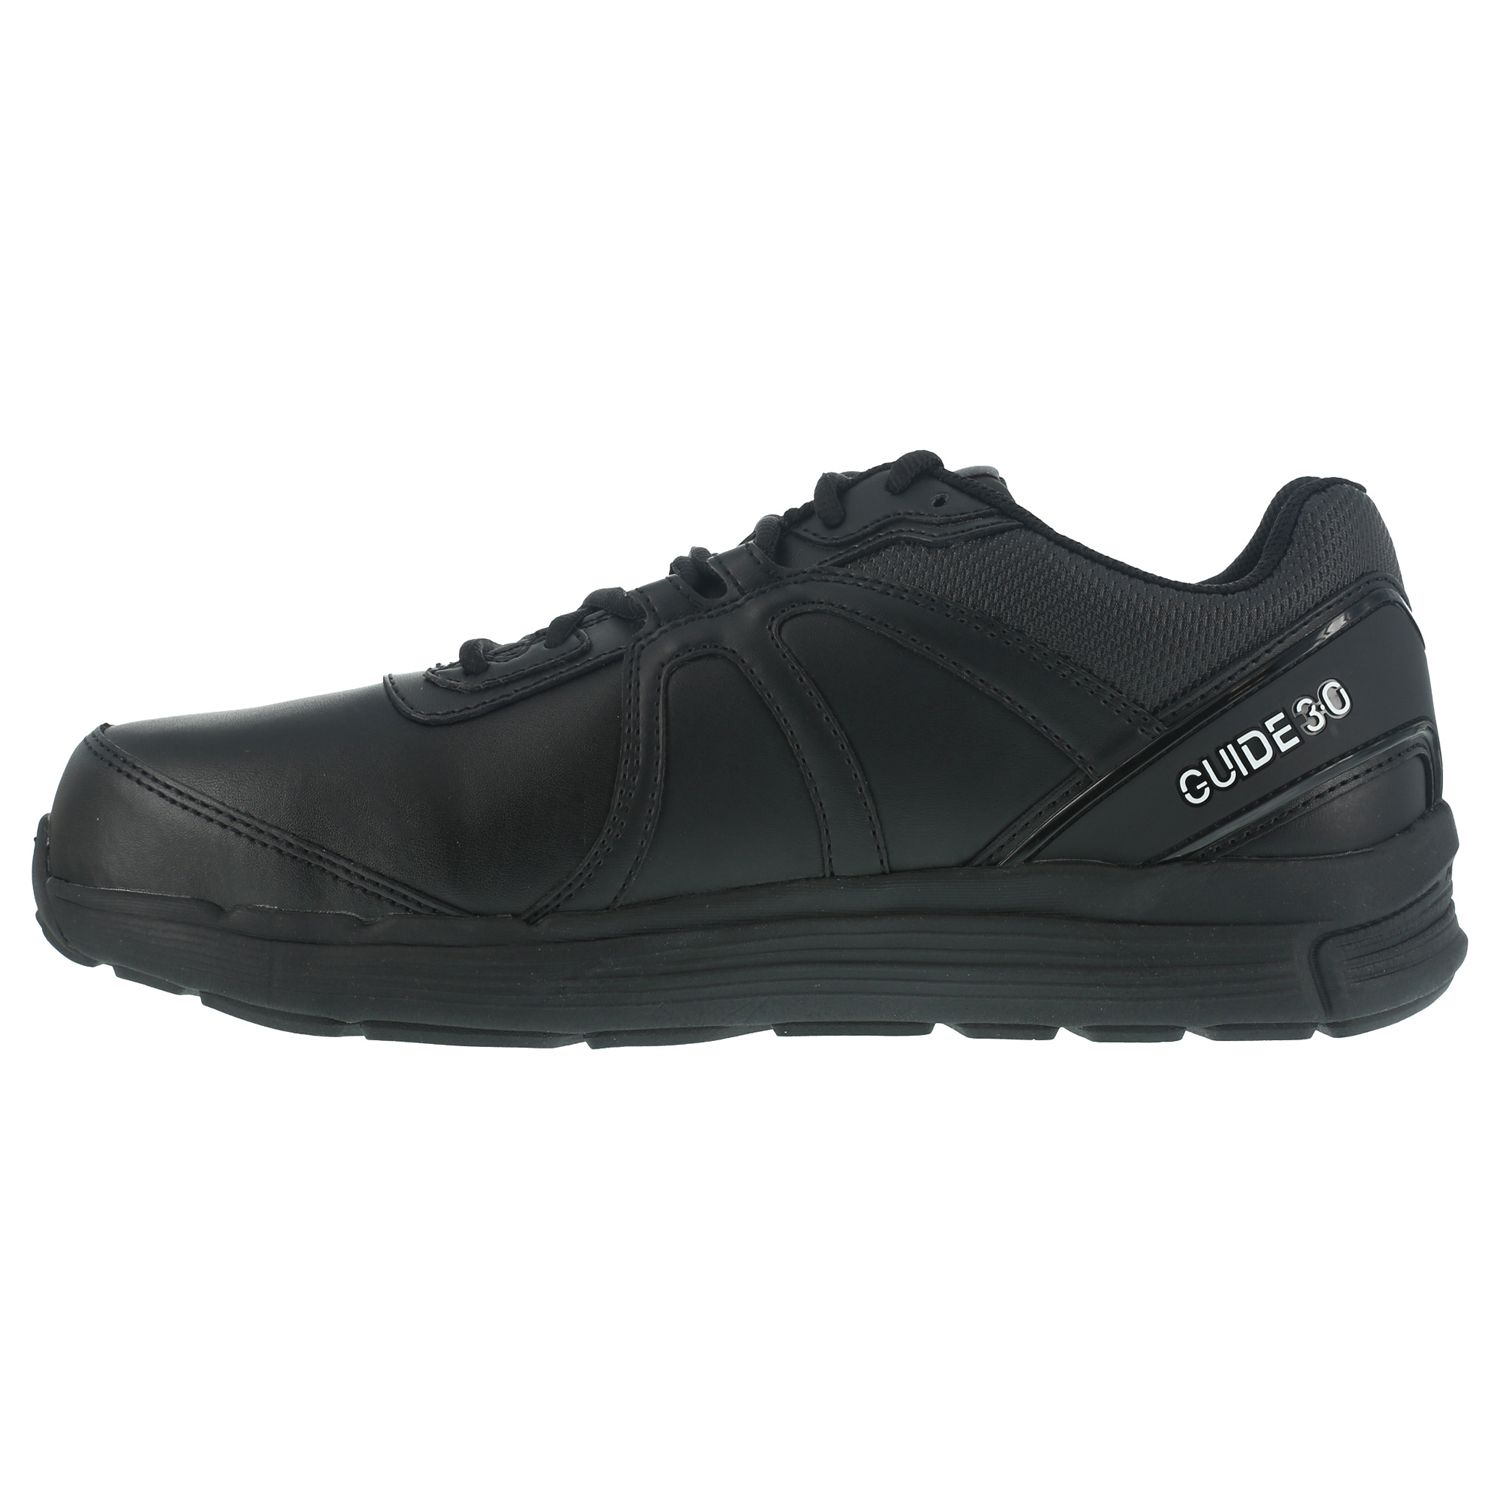 6250979ac517 Men s Reebok Shoes